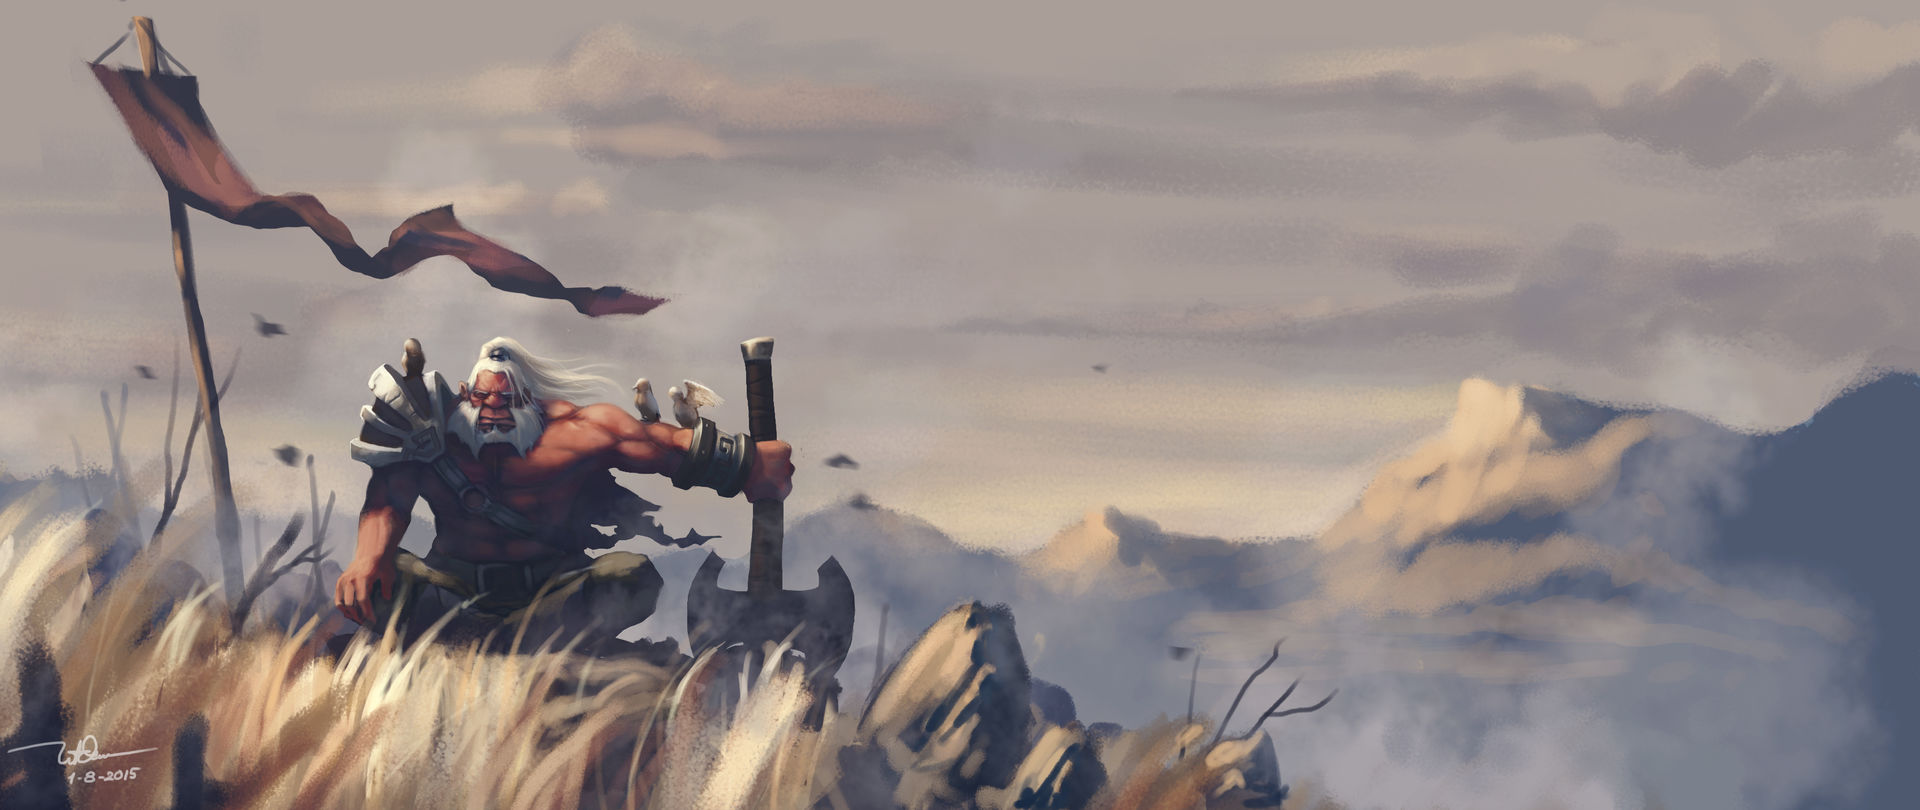 Axe Wallpapers Dota 2